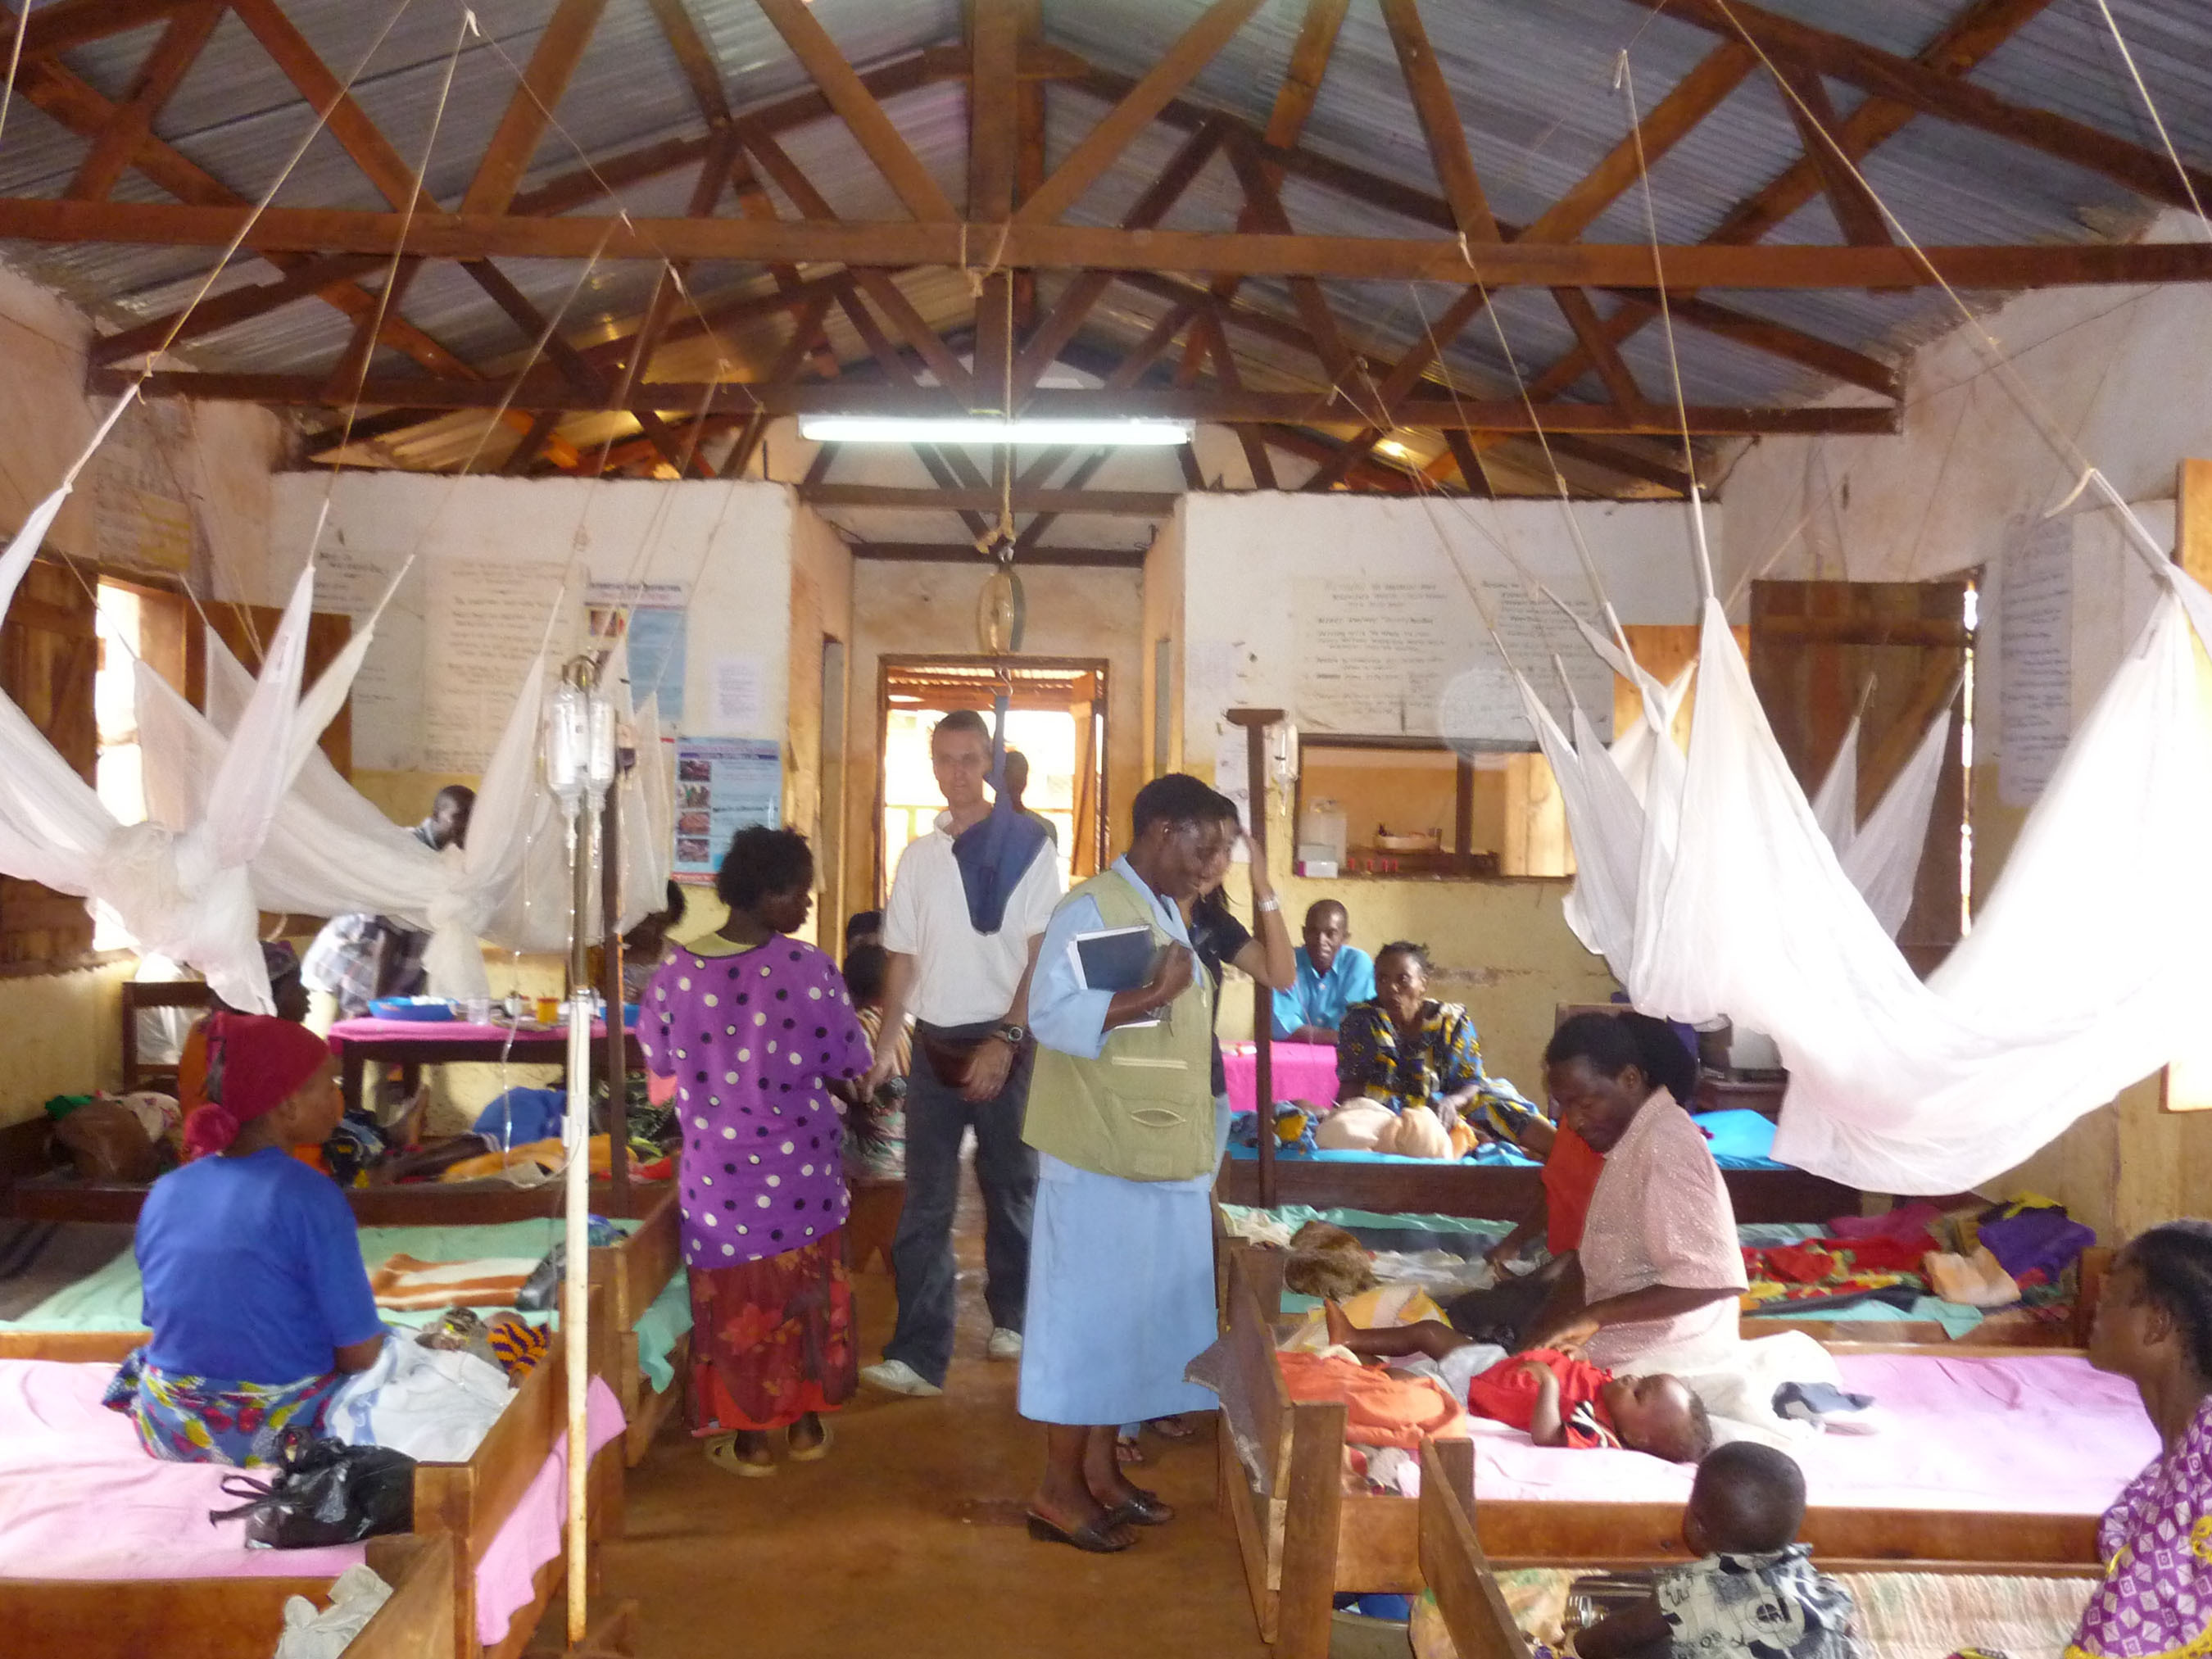 Malaria Clinic in Tanzania helped by SMS for Life and IBM LotusLive.com cloud computing.  (PRNewsFoto/IBM)